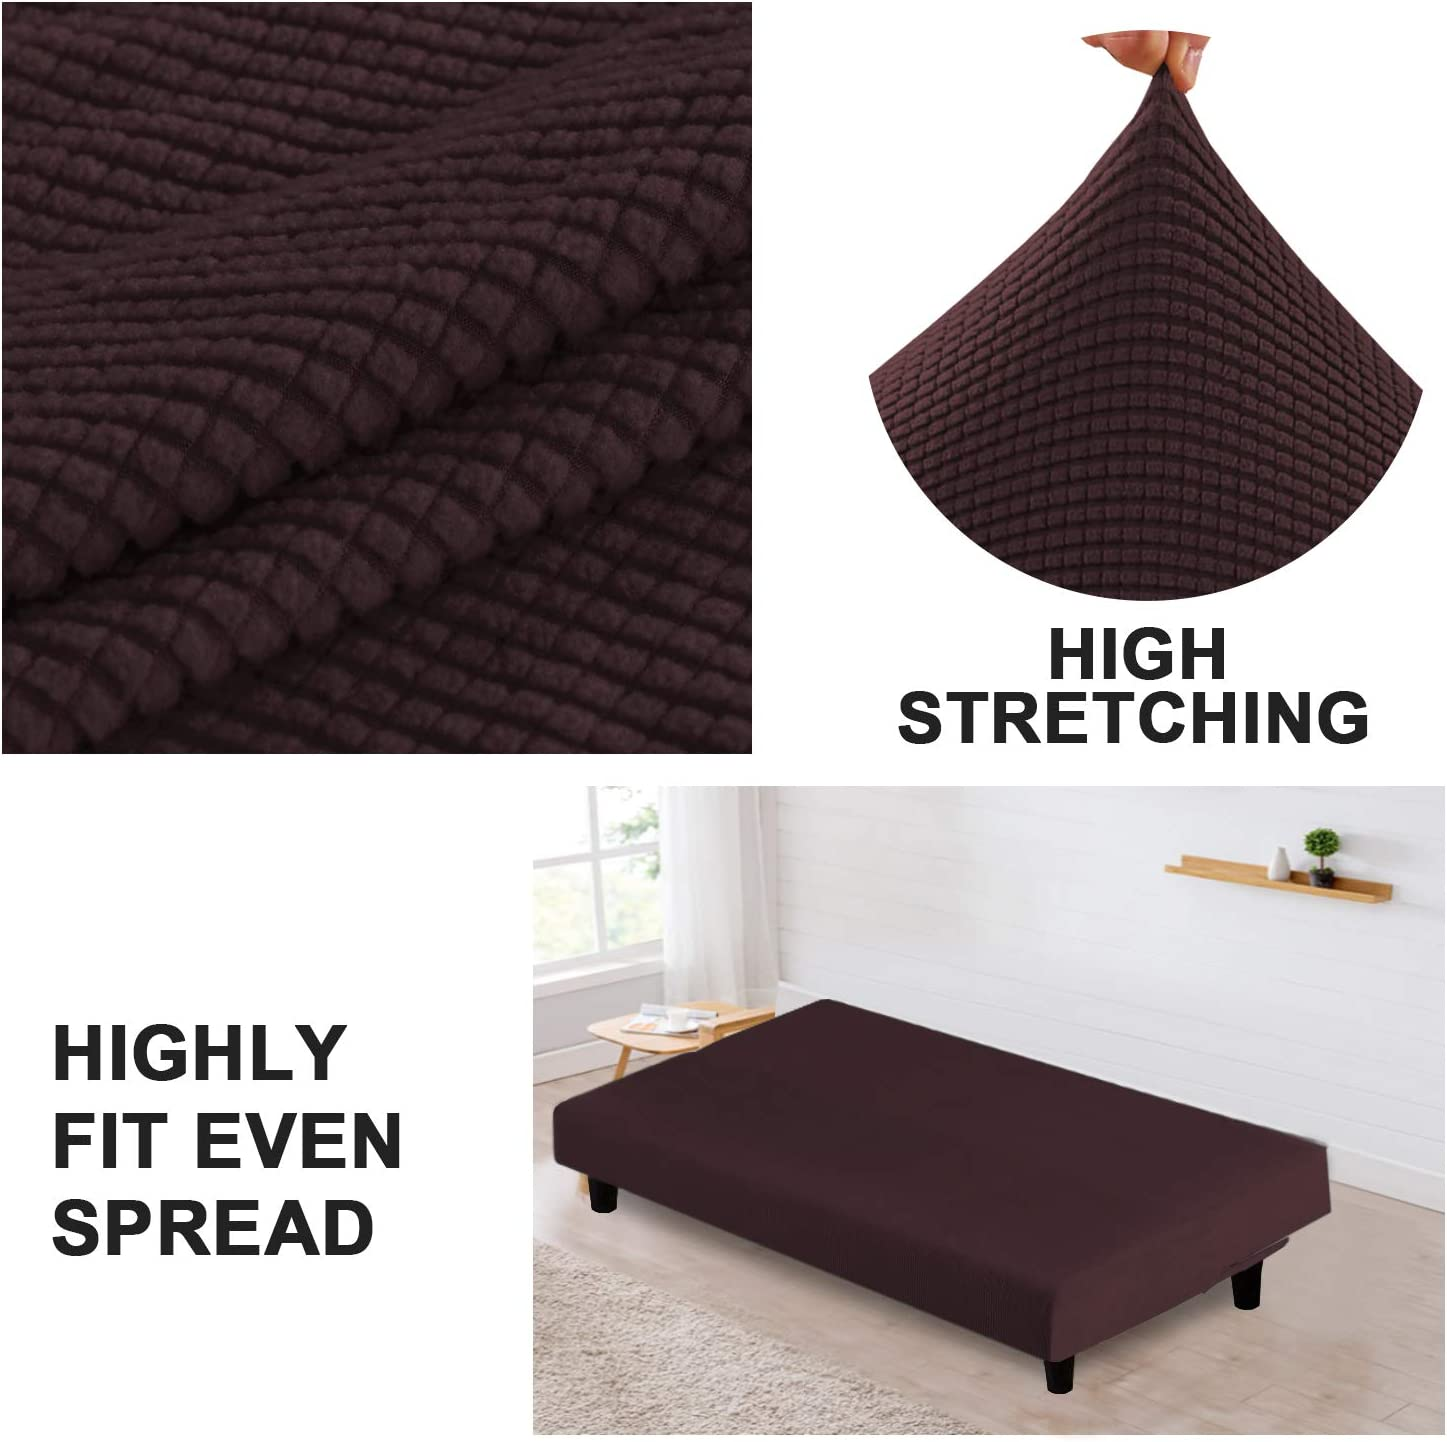 1-Piece Stretch Slipcover for Futon Slipcover Spandex Fabric Soft and Durable for Sofa No Slipping Stay in Place Cover Turquoize Stretch Futon Cover//Couch Covers//Lounge Cover Futon, Brown